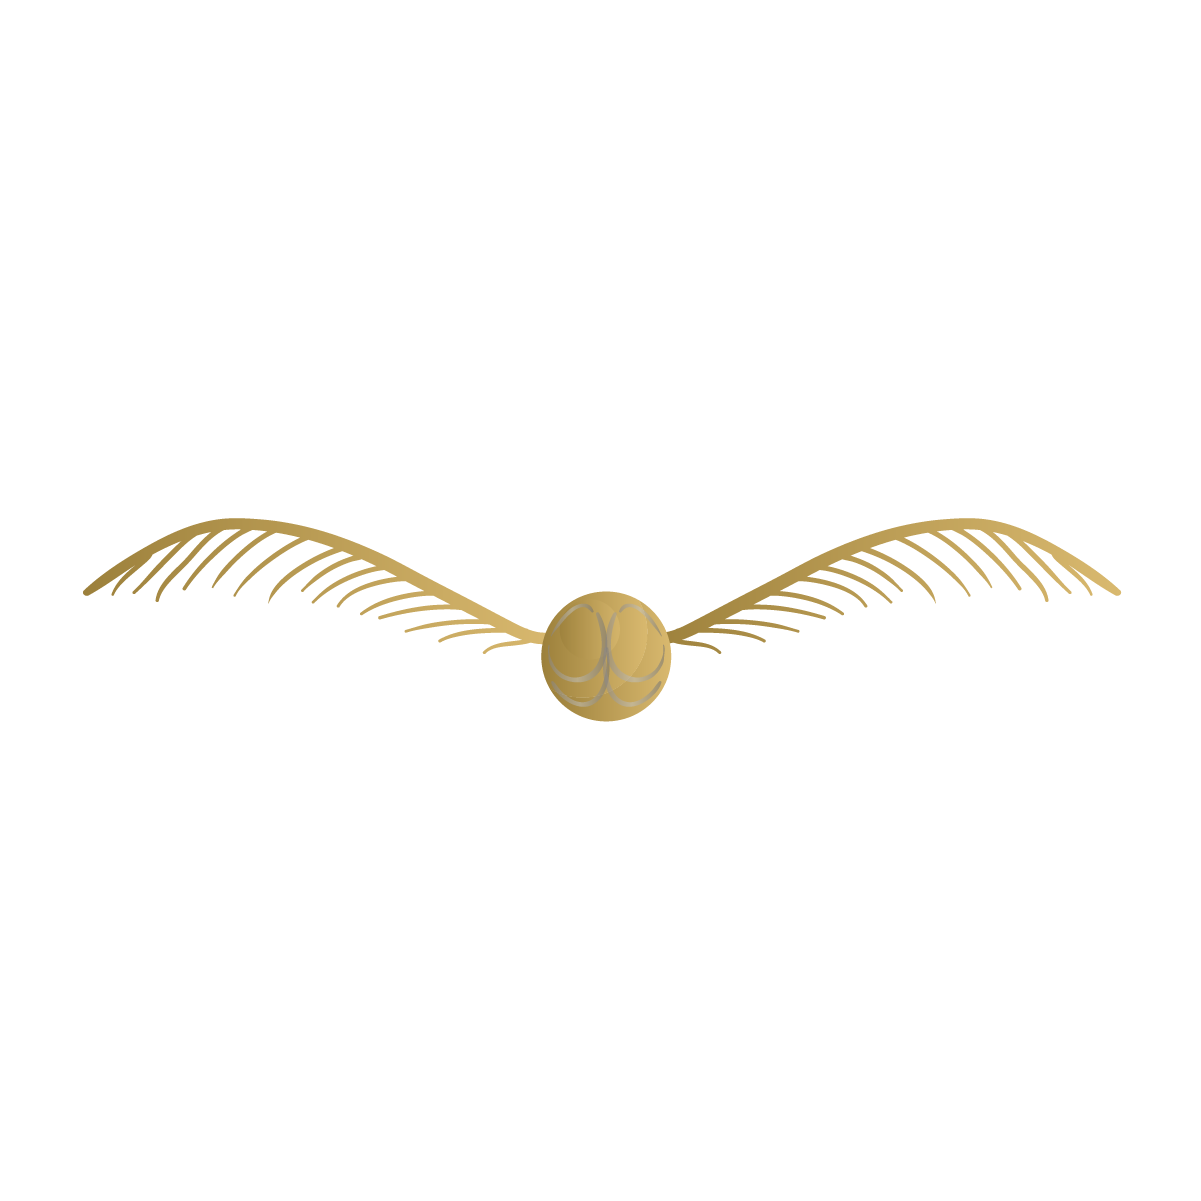 Harry Potter The Golden Snitch Gold Silver Golden Snitch Golden Snitch Tattoo Snitch Tattoo